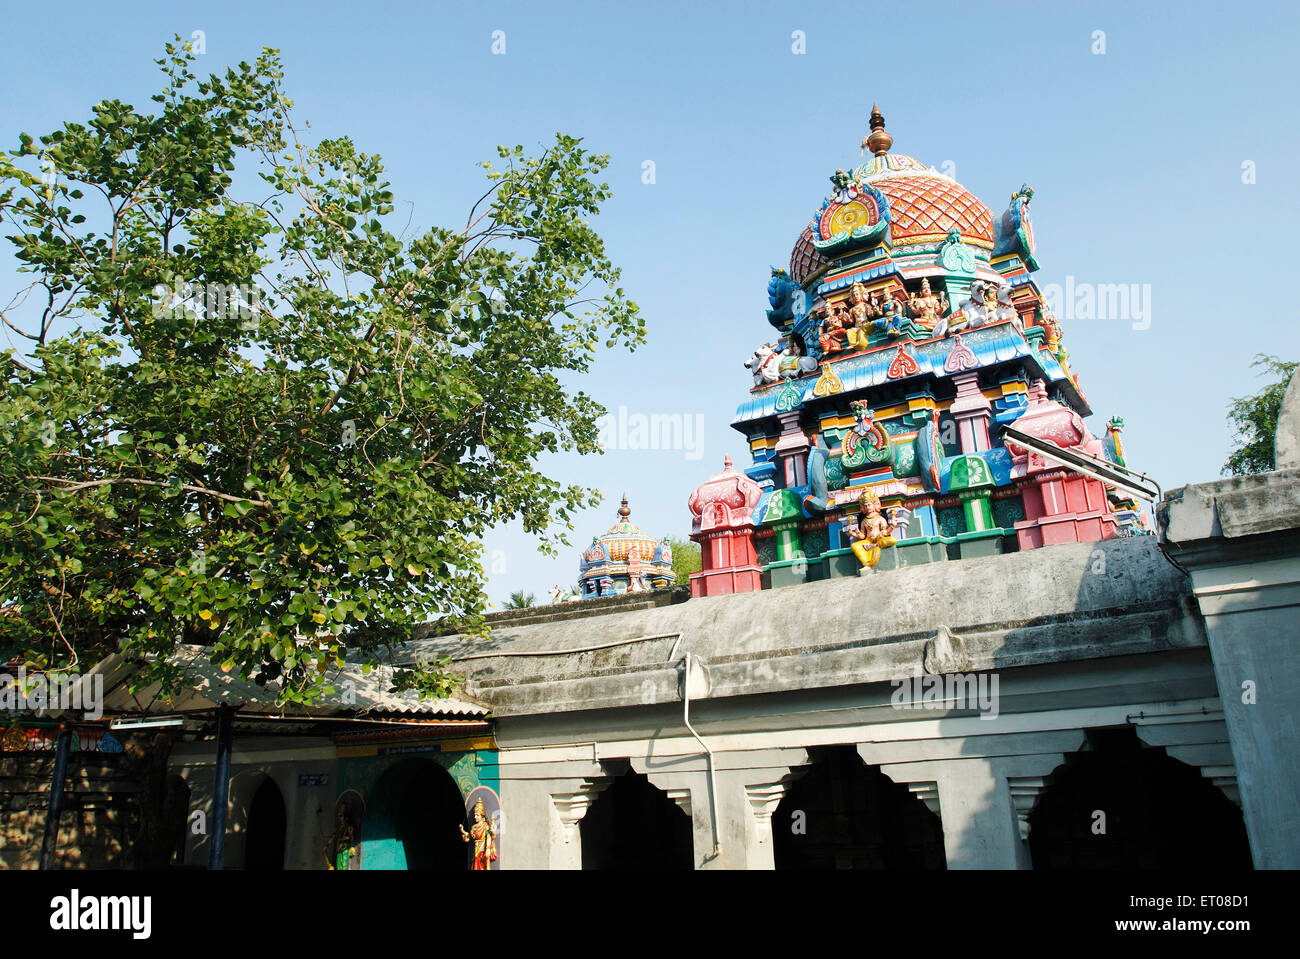 Kanjanur shiva's temple ; Shivastalam is associated with Sukran Venus  ; Thanjavur ; Tamil Nadu ; India - Stock Image